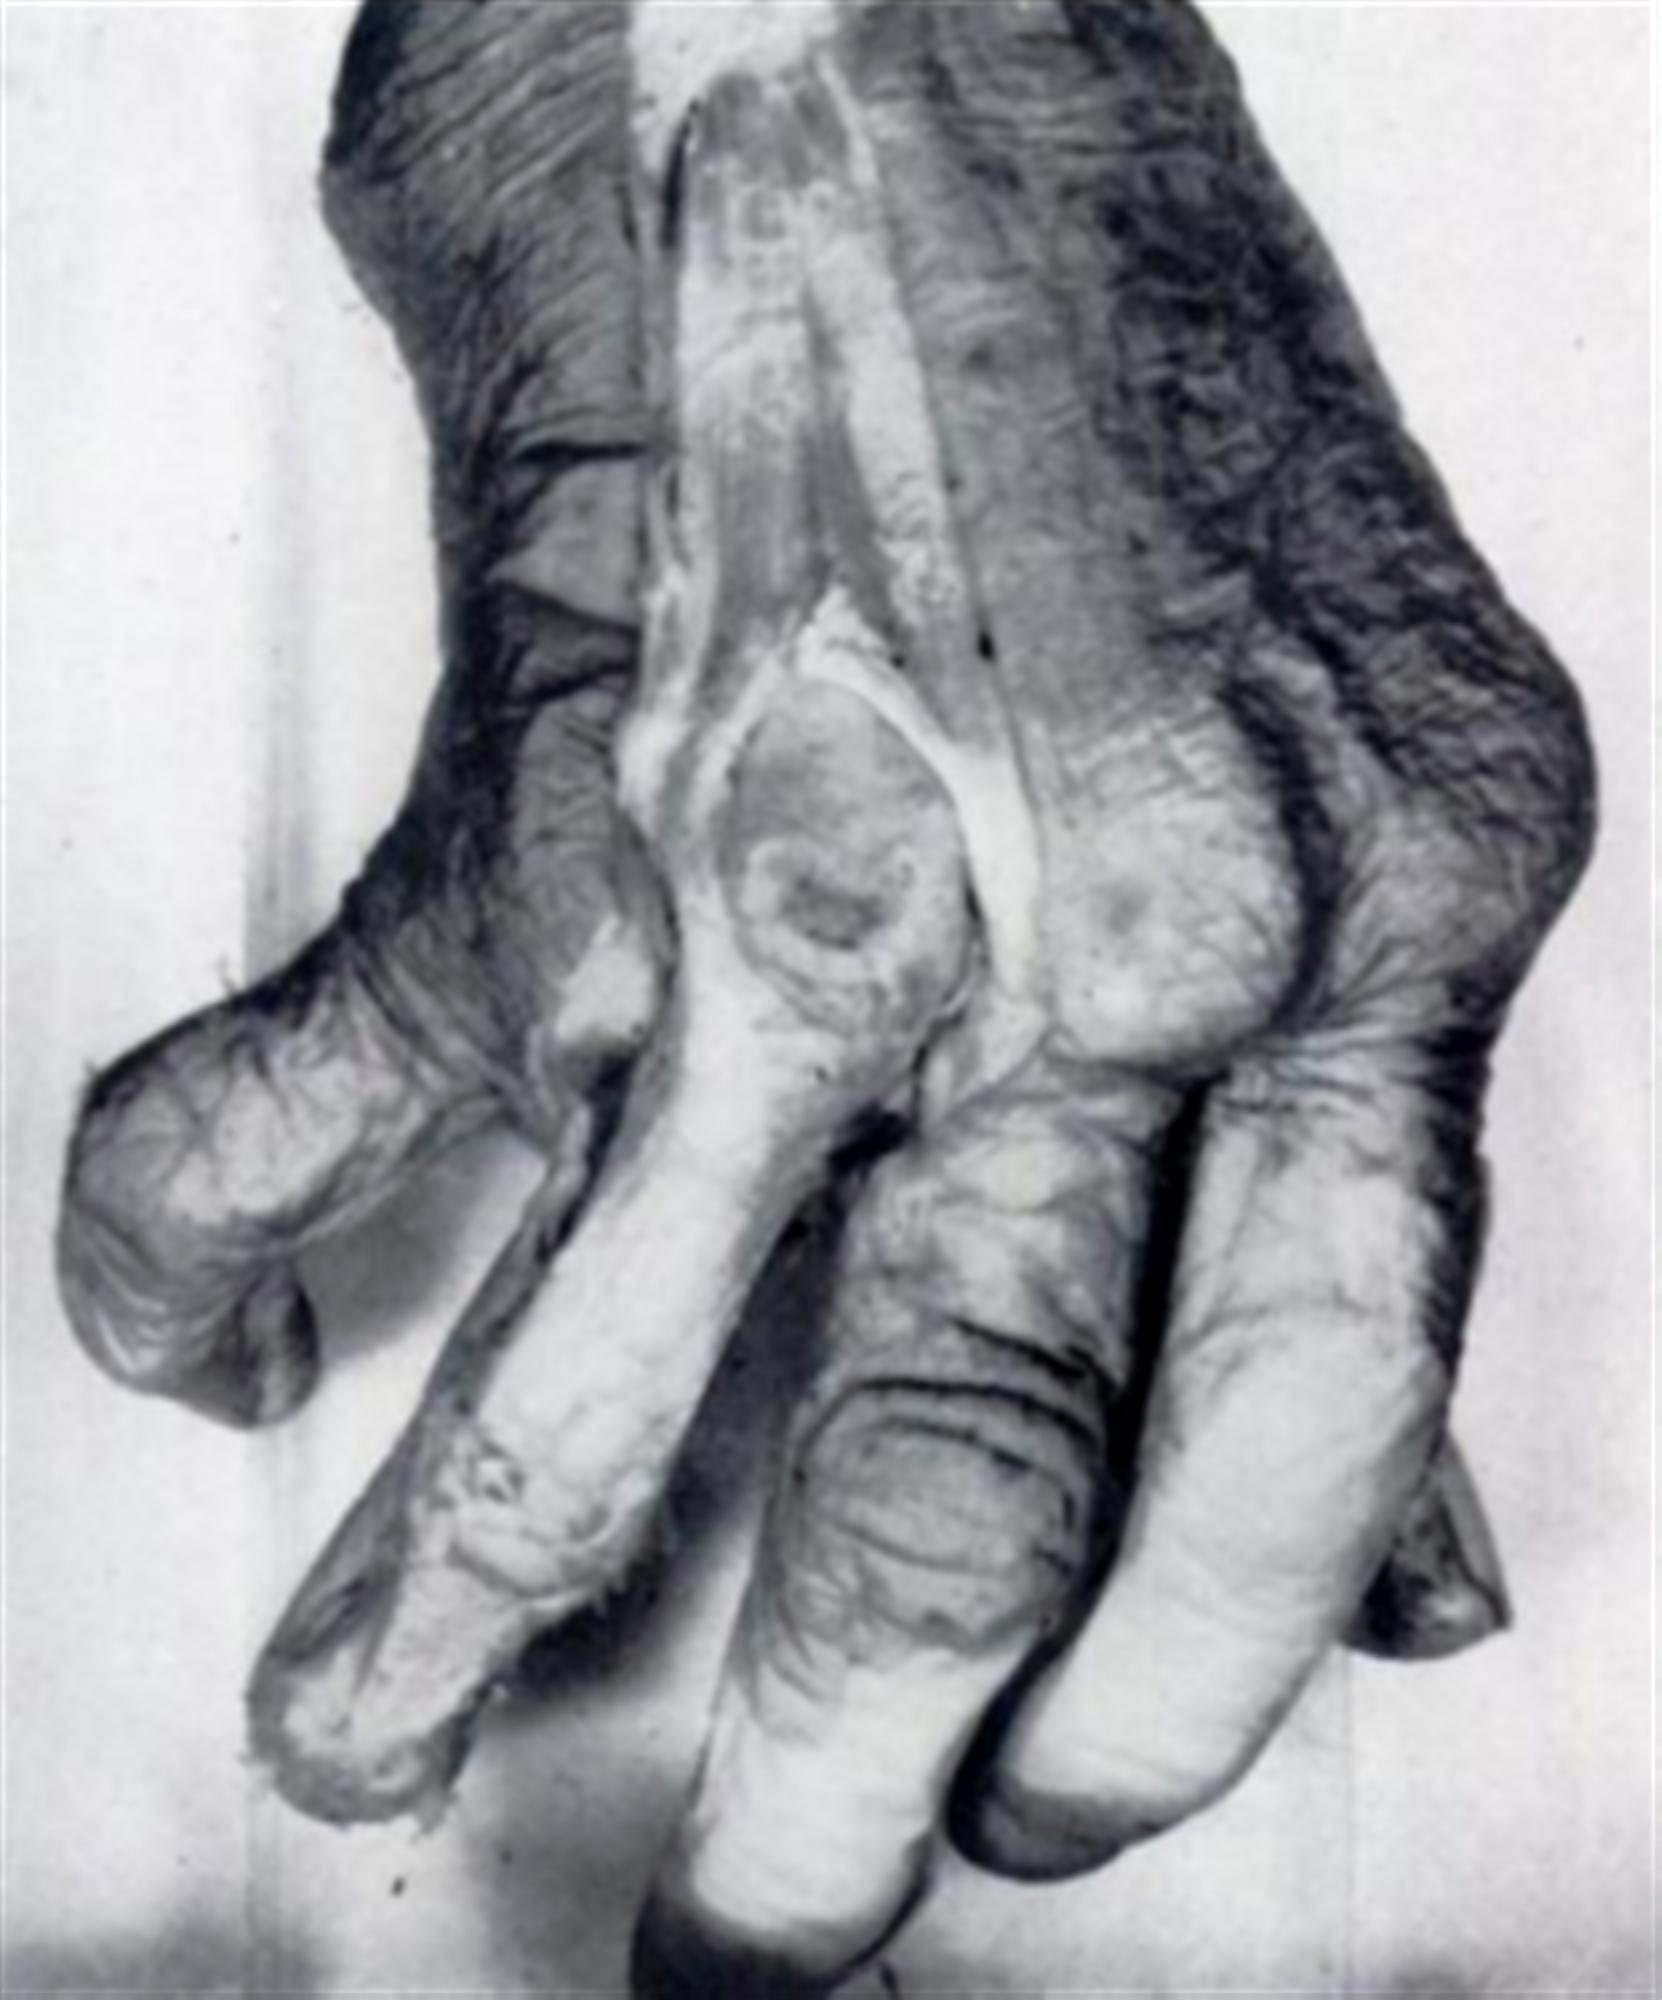 Sagittal Band Rupture Traumatic Extensor Tendon Dislocation Hand Figure 2 Skeletal Diagram Of The Index Finger Top Along With Its Inflammatory Eg Rheumatoid Arthritis